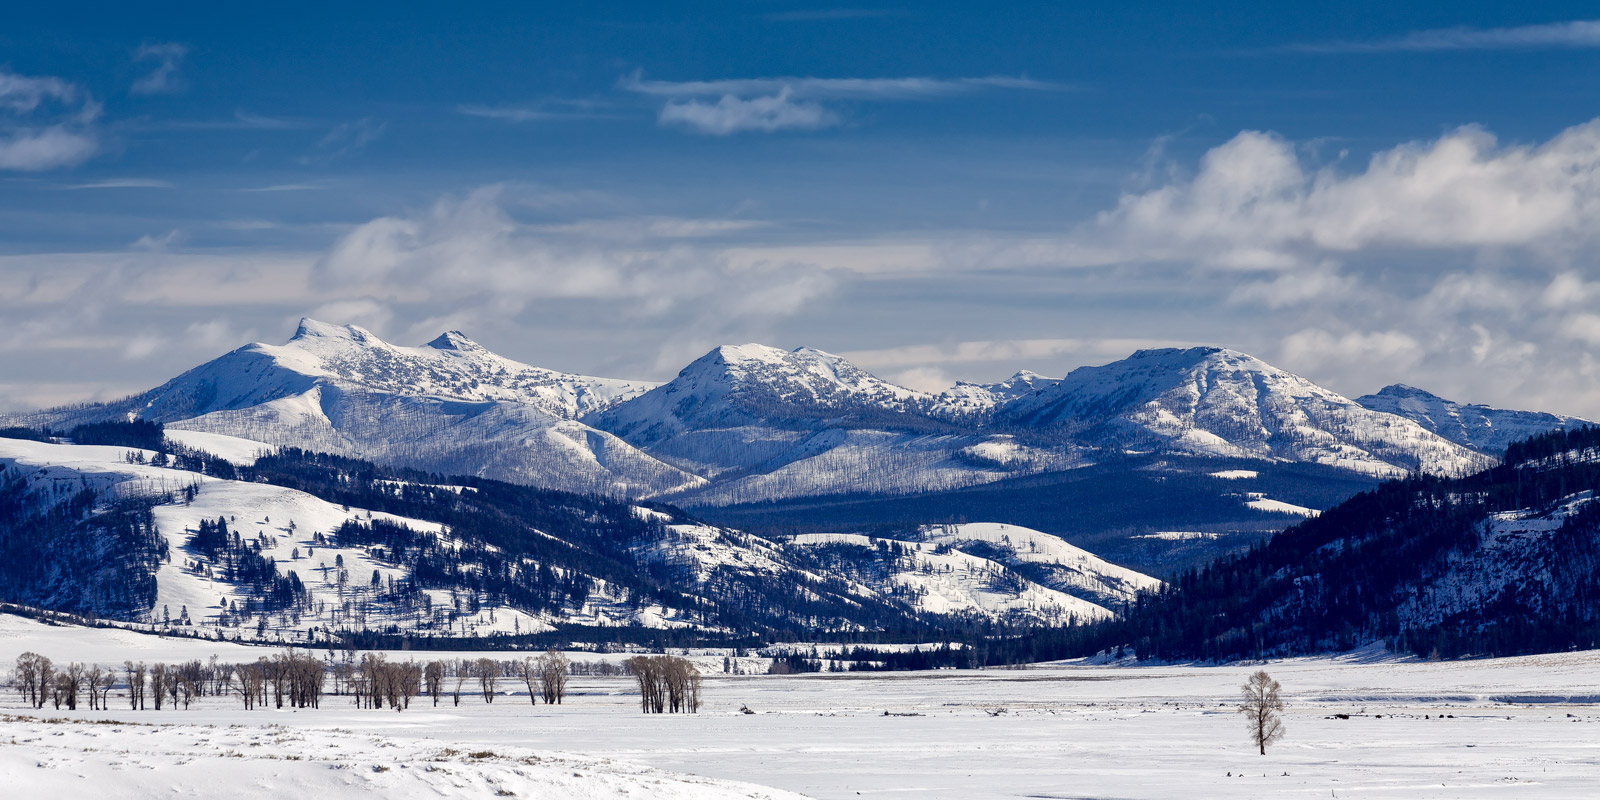 Wyoming, Yellowstone, Winter, Lamar Valley, Mountains, Snow Covered, limited edition, photograph, fine art, landscape, photo